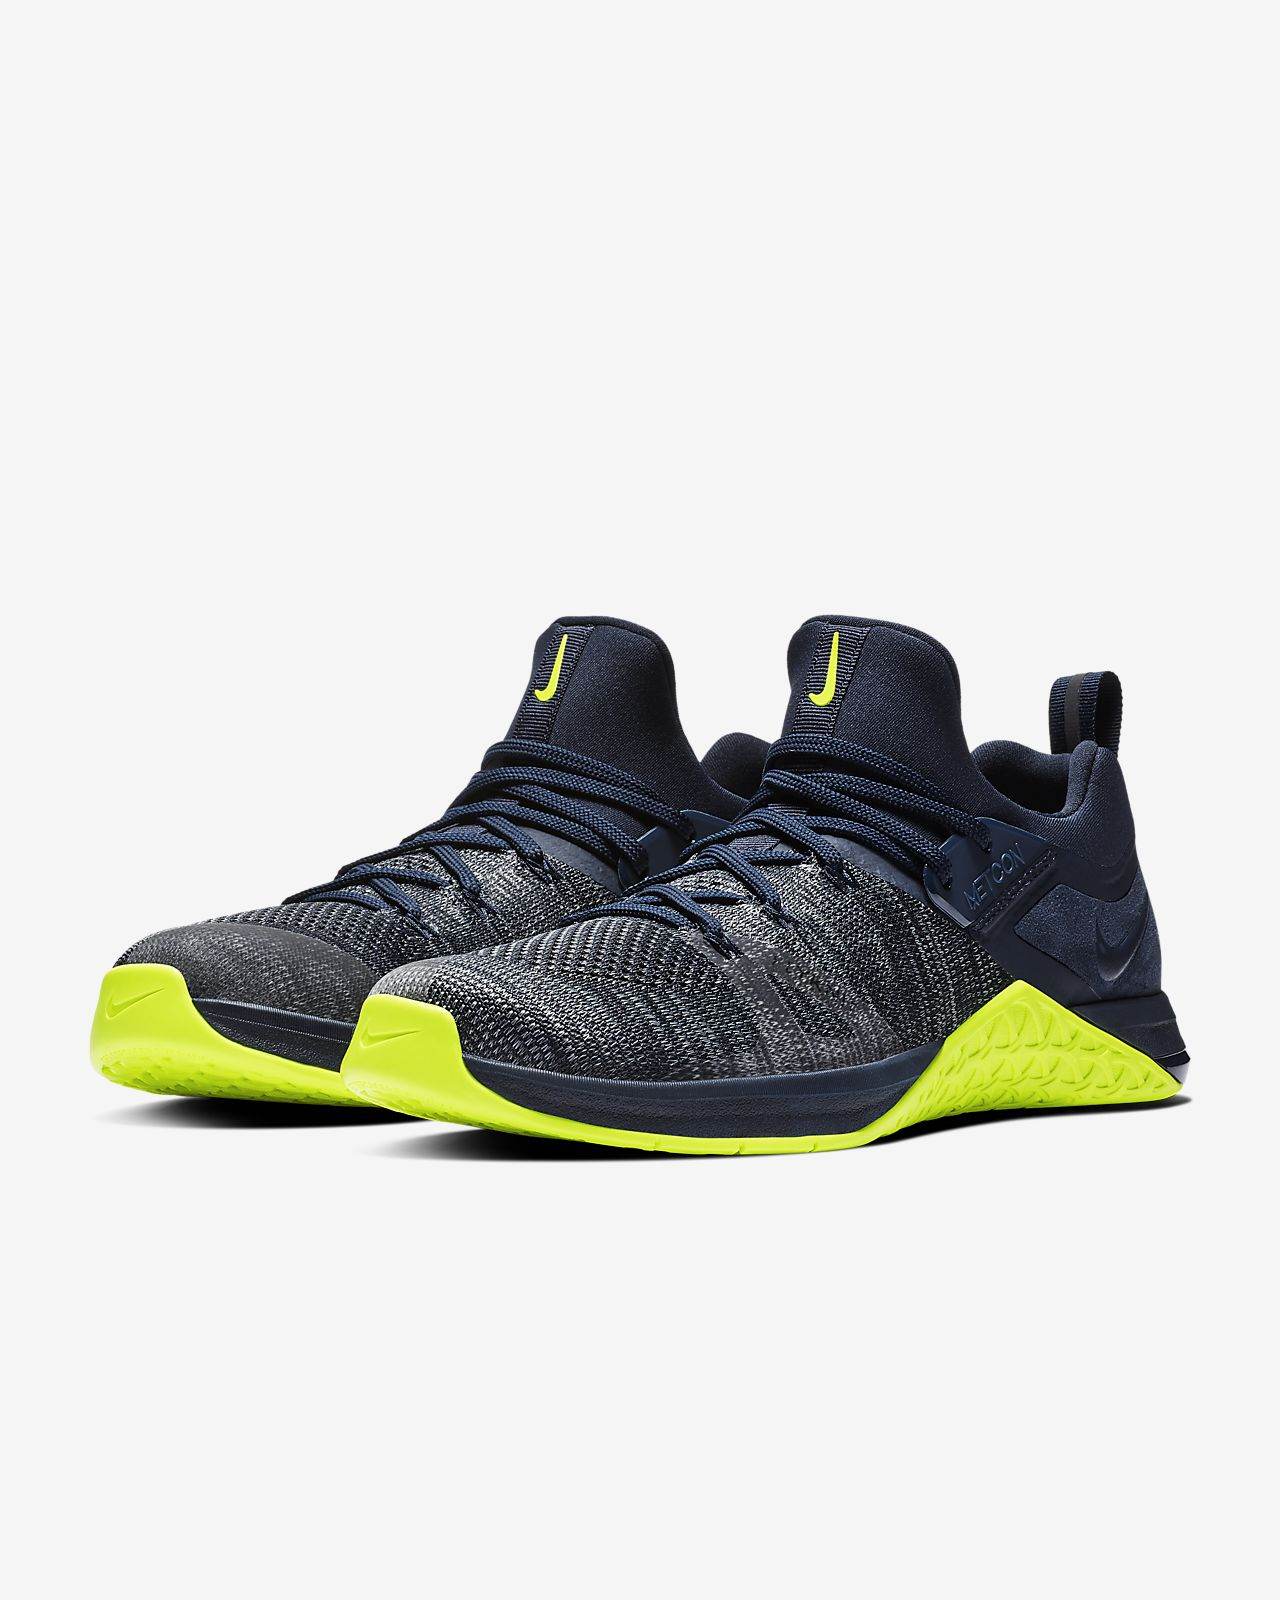 info for 07a0a 64645 ... Nike Metcon Flyknit 3 Men s Cross-Training Weightlifting Shoe